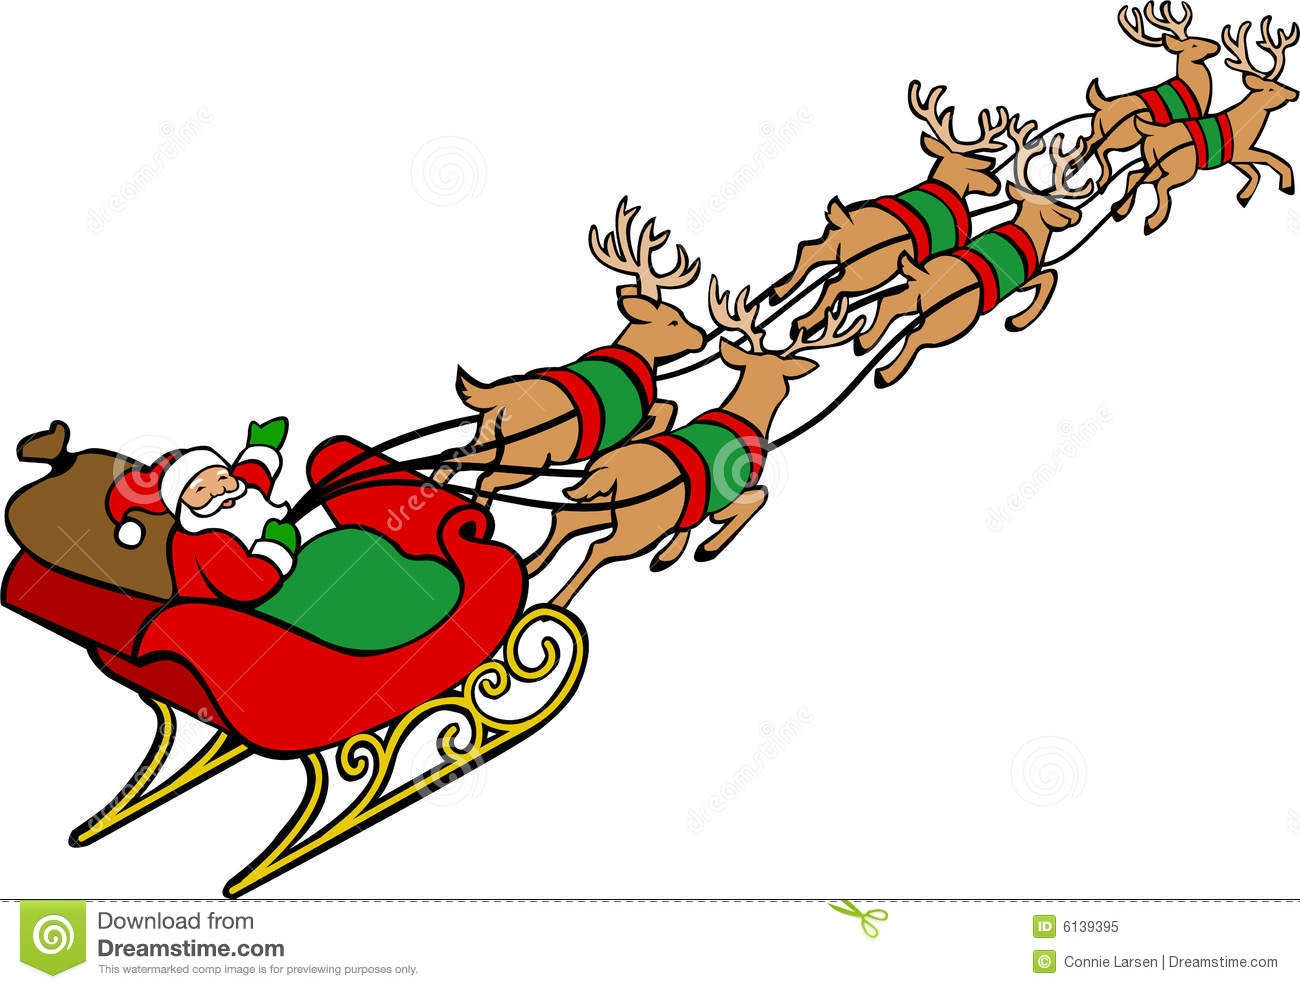 Santa Sleigh and Reindeer Clip Art.